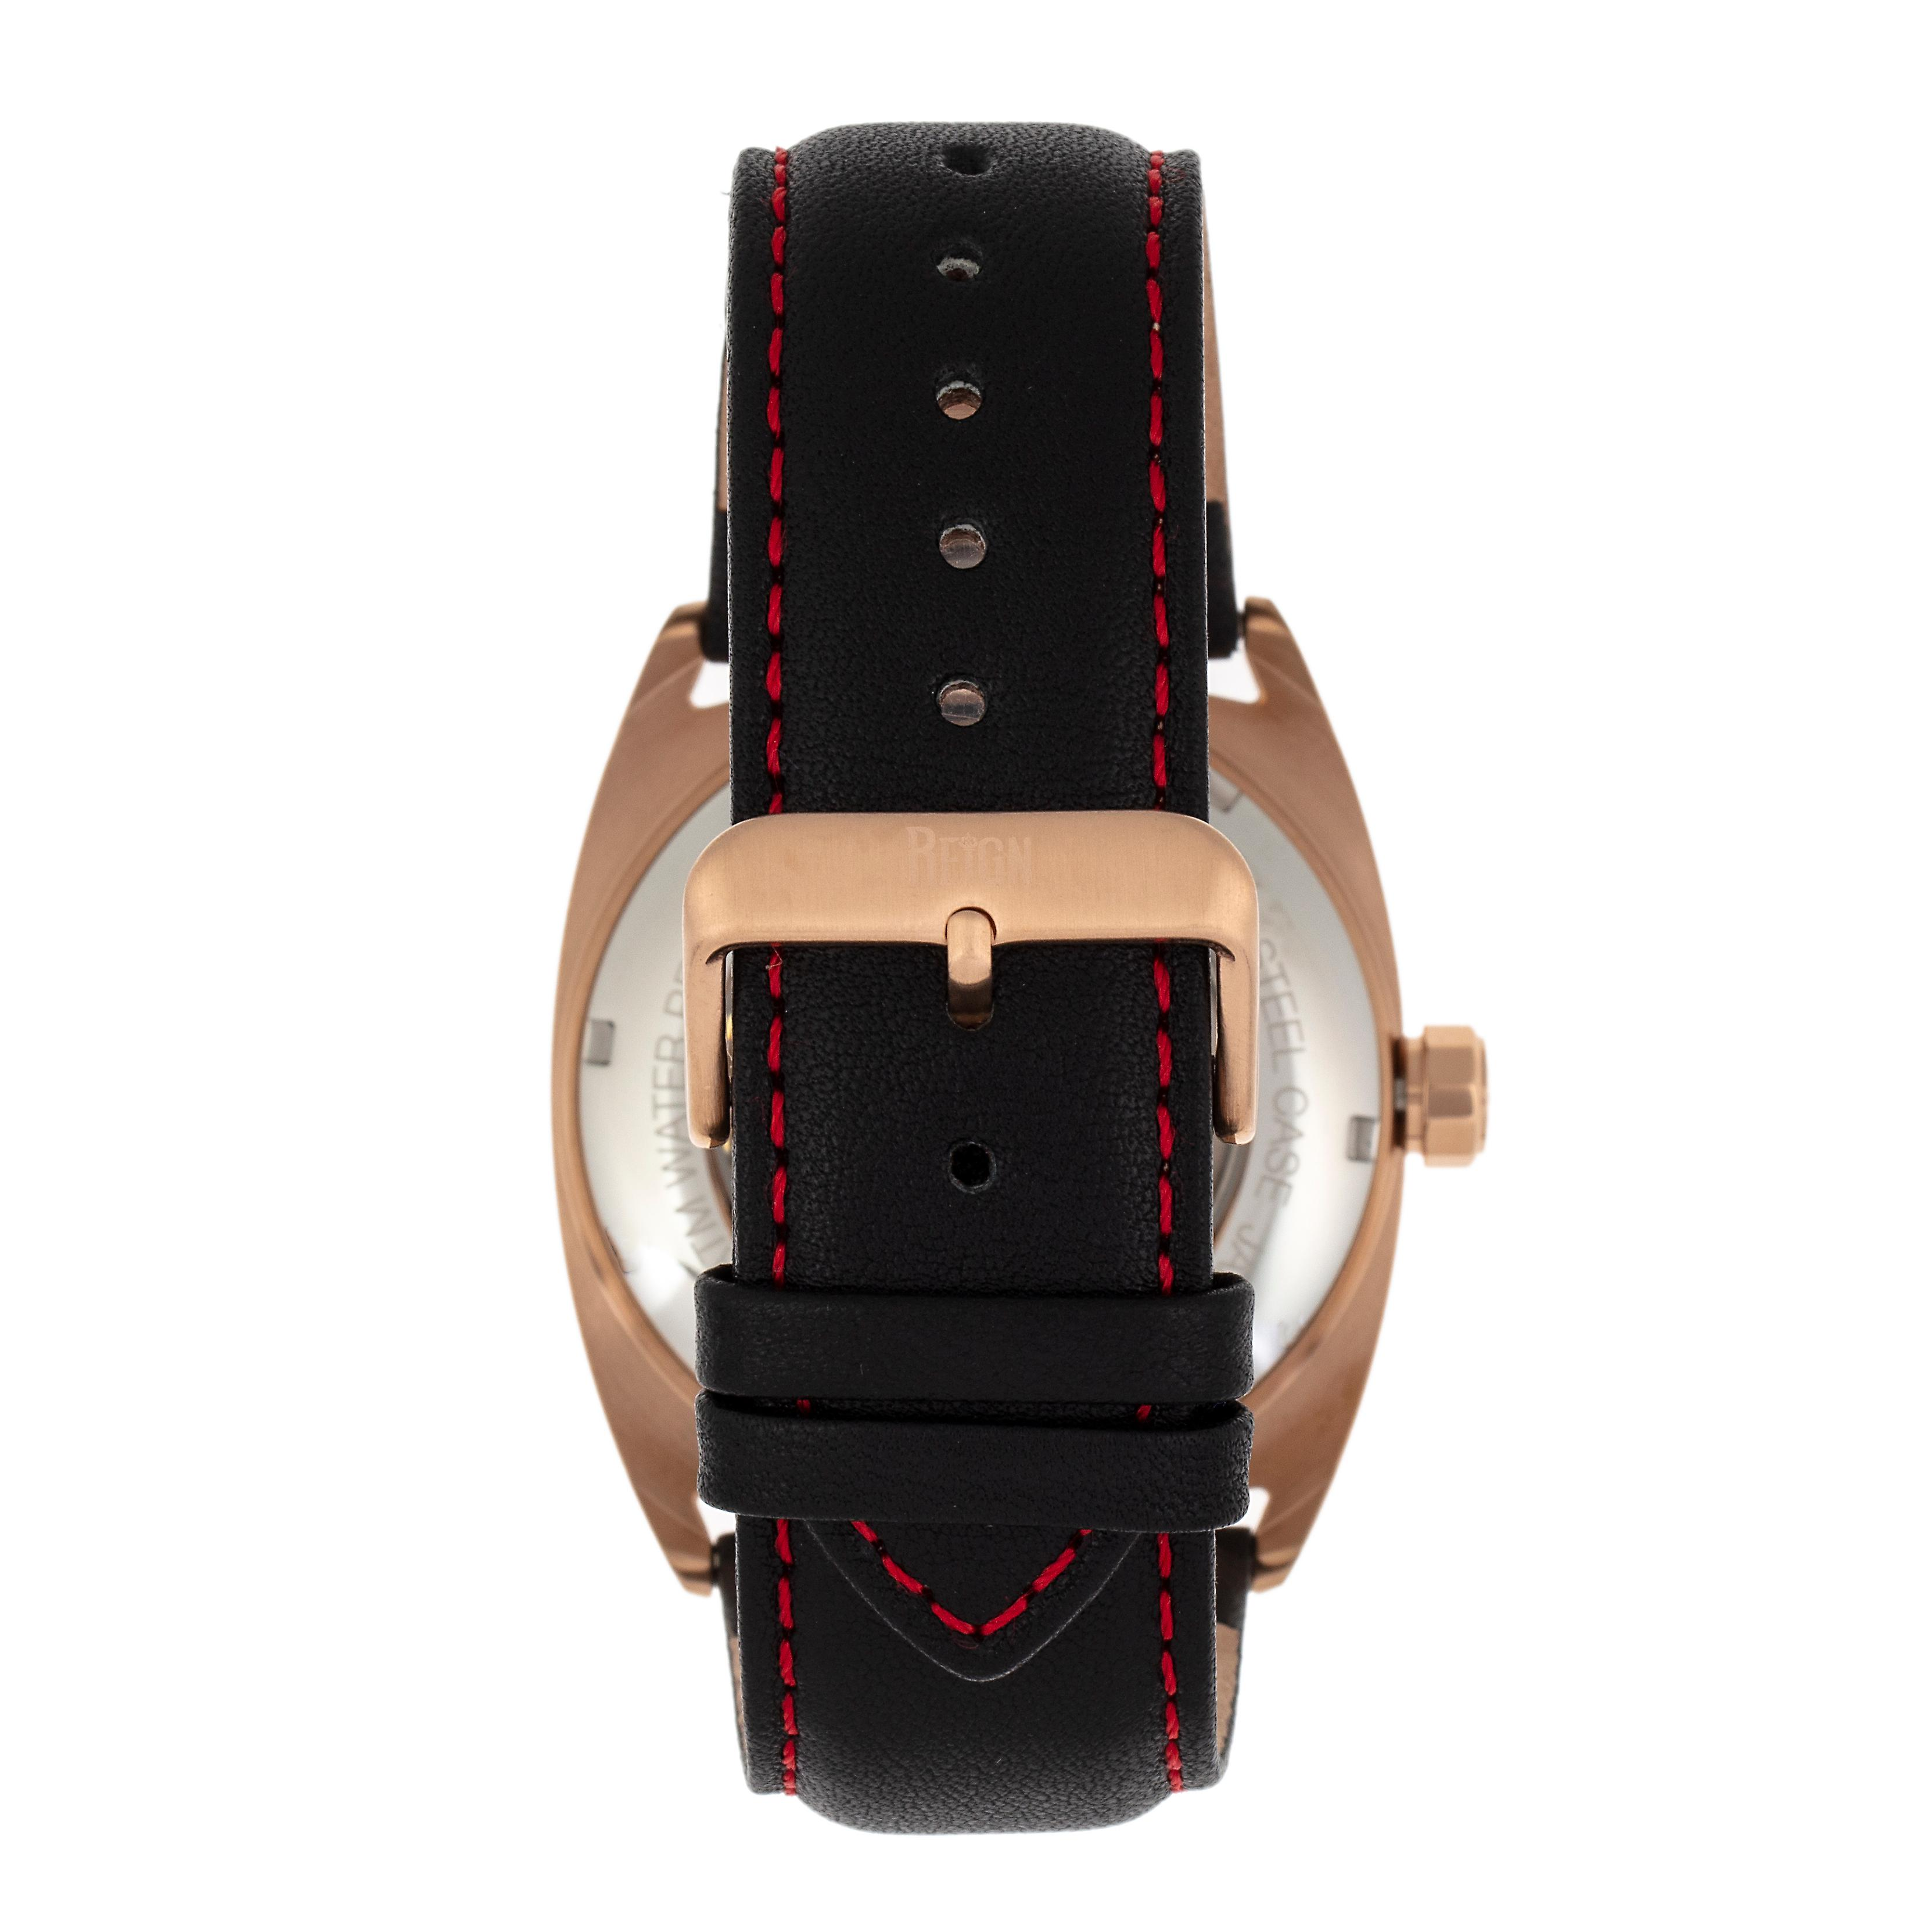 Reign Astro Semi-Skeleton Leather-Band Watch - Rose Gold/Black